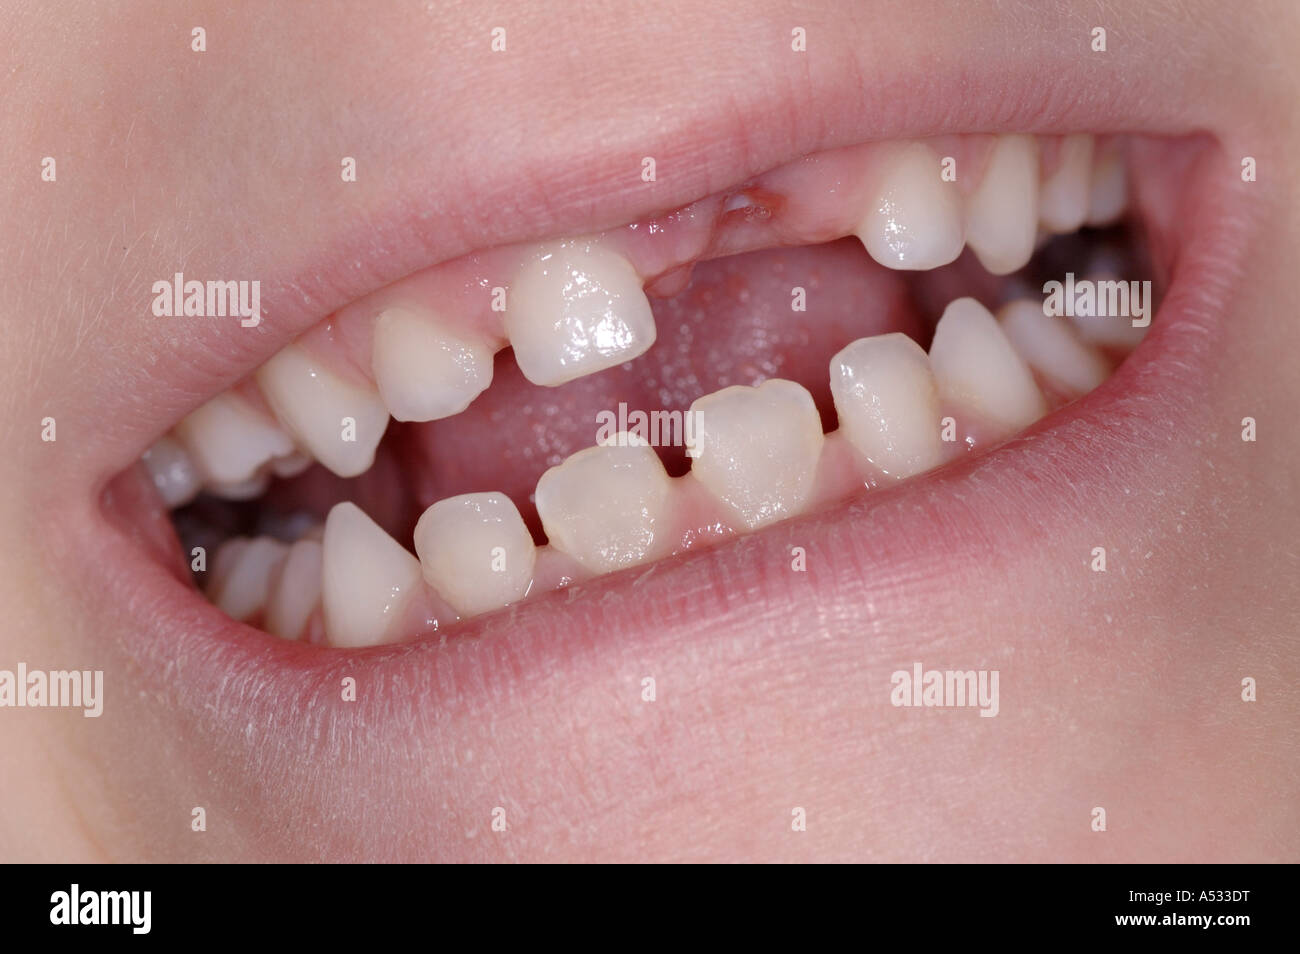 Smile with recently missing front tooth - Stock Image